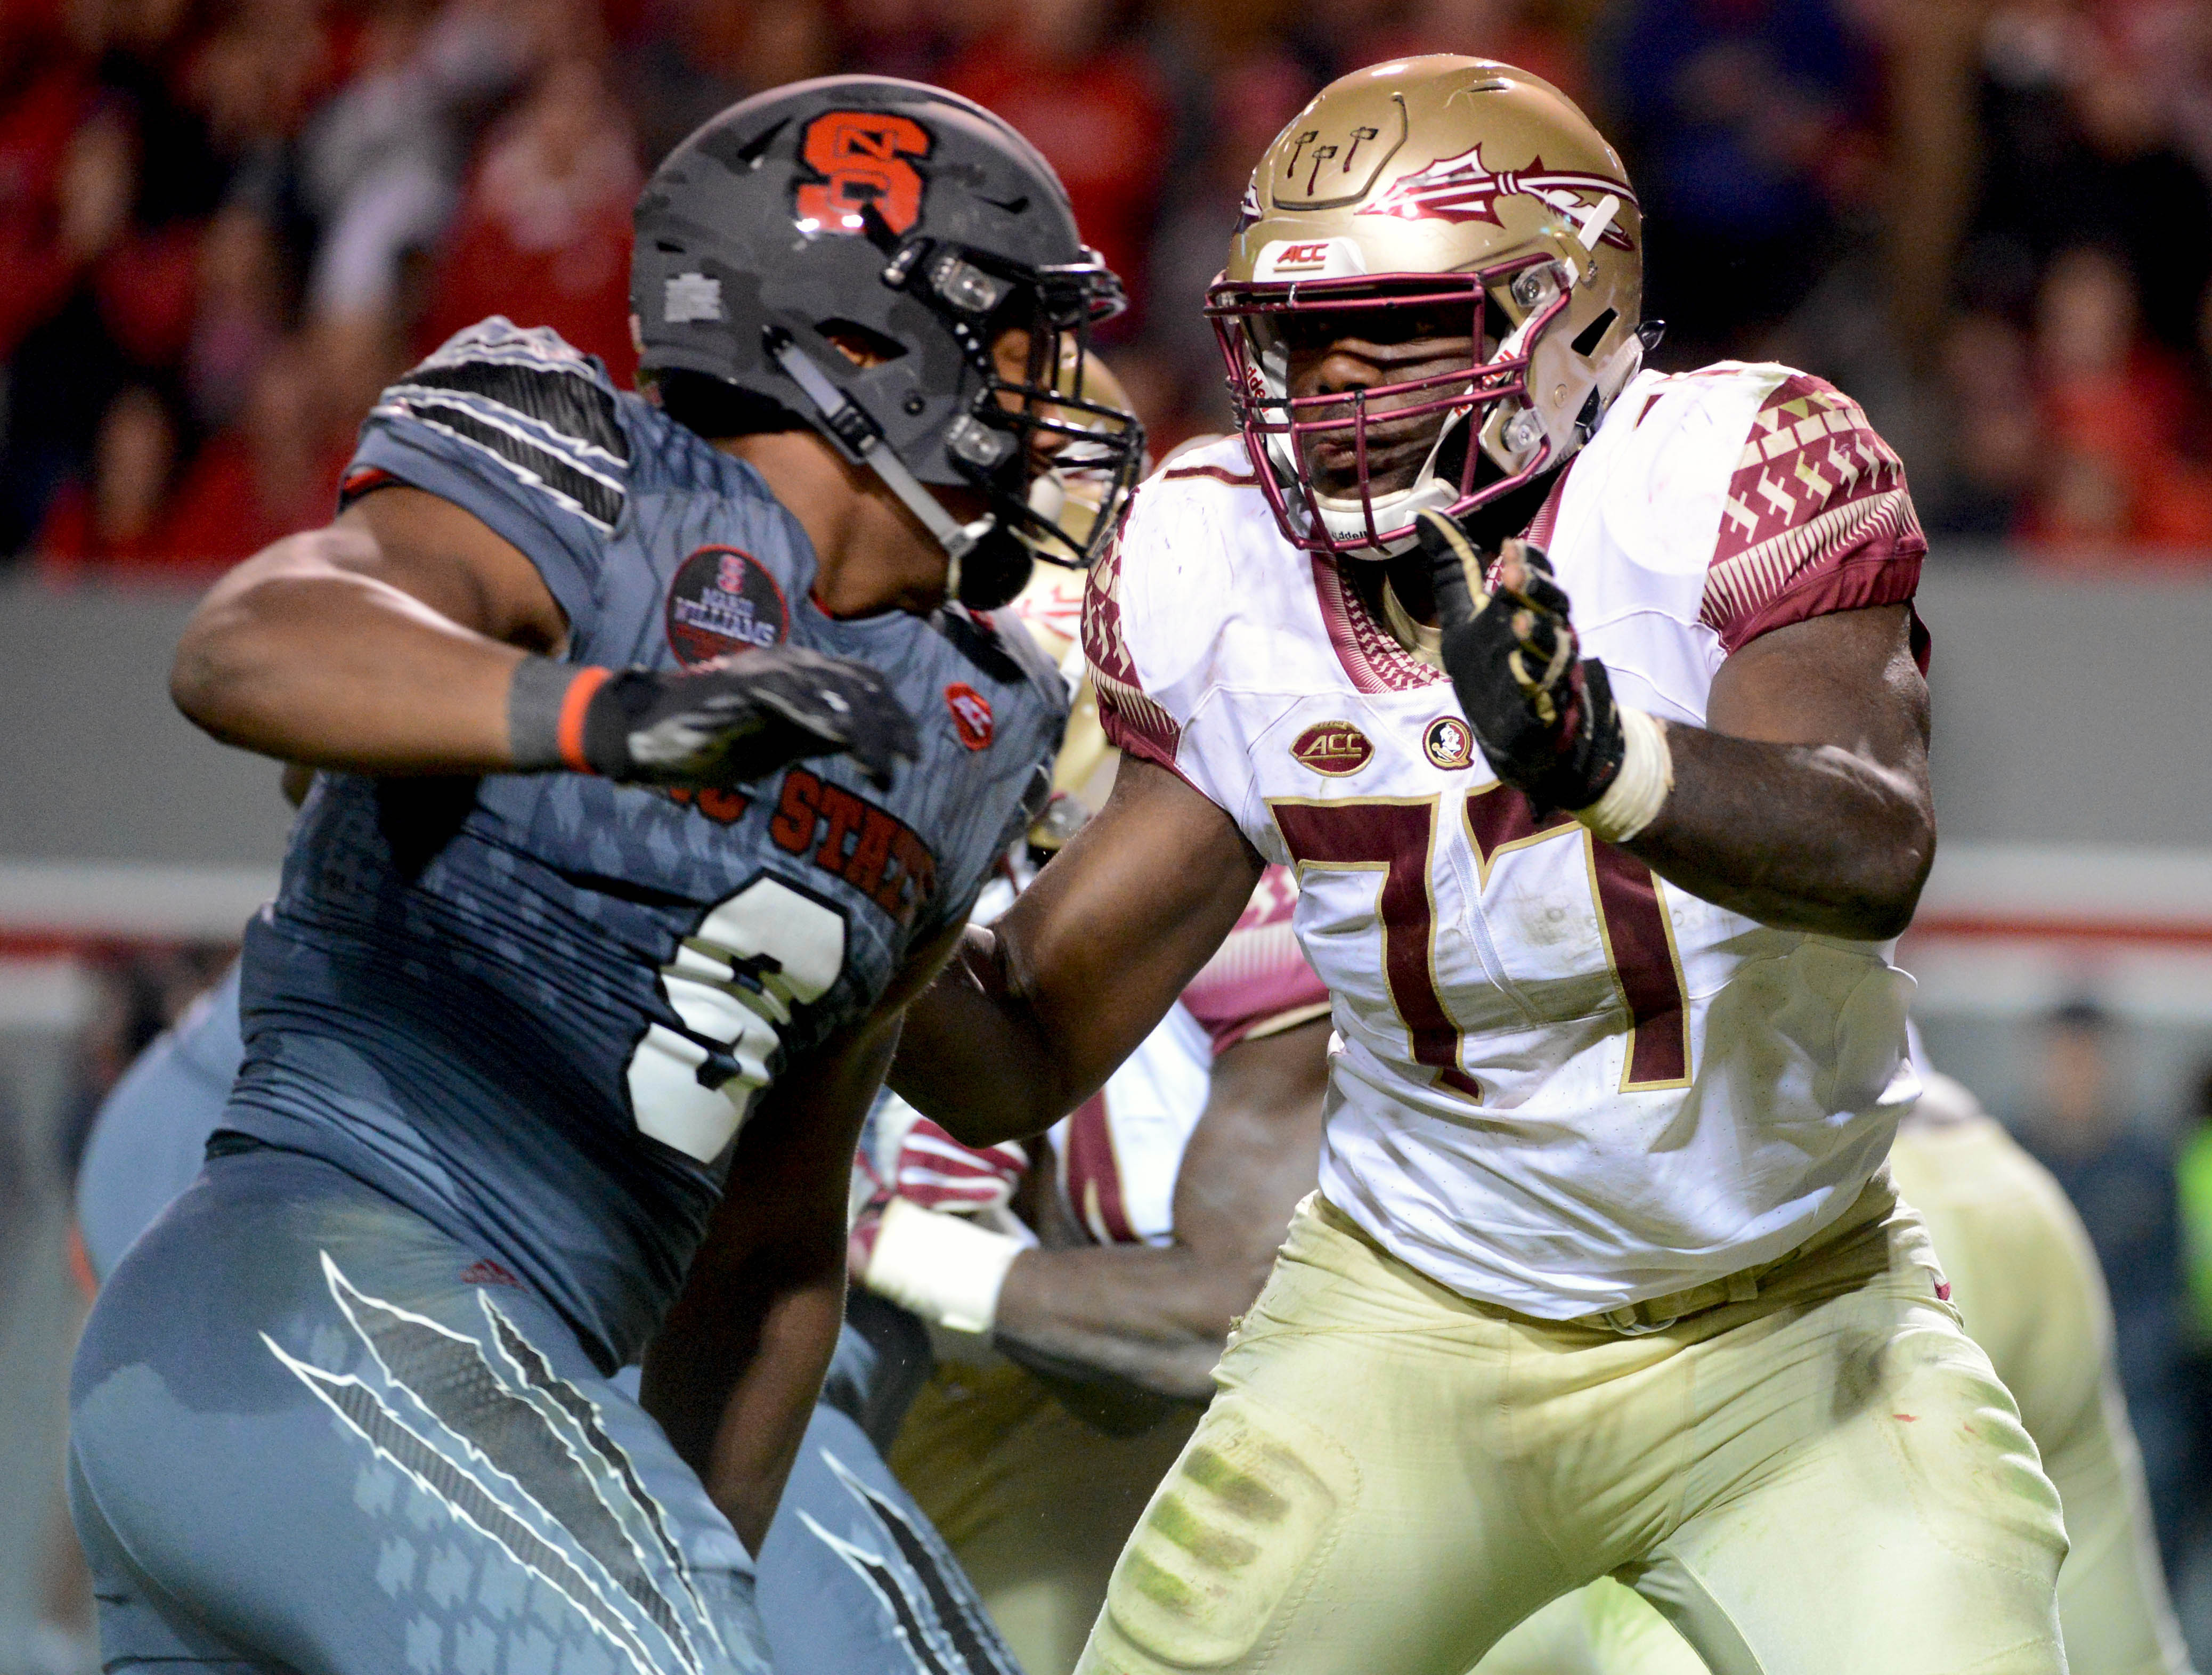 Ncaa football florida state at north carolina state